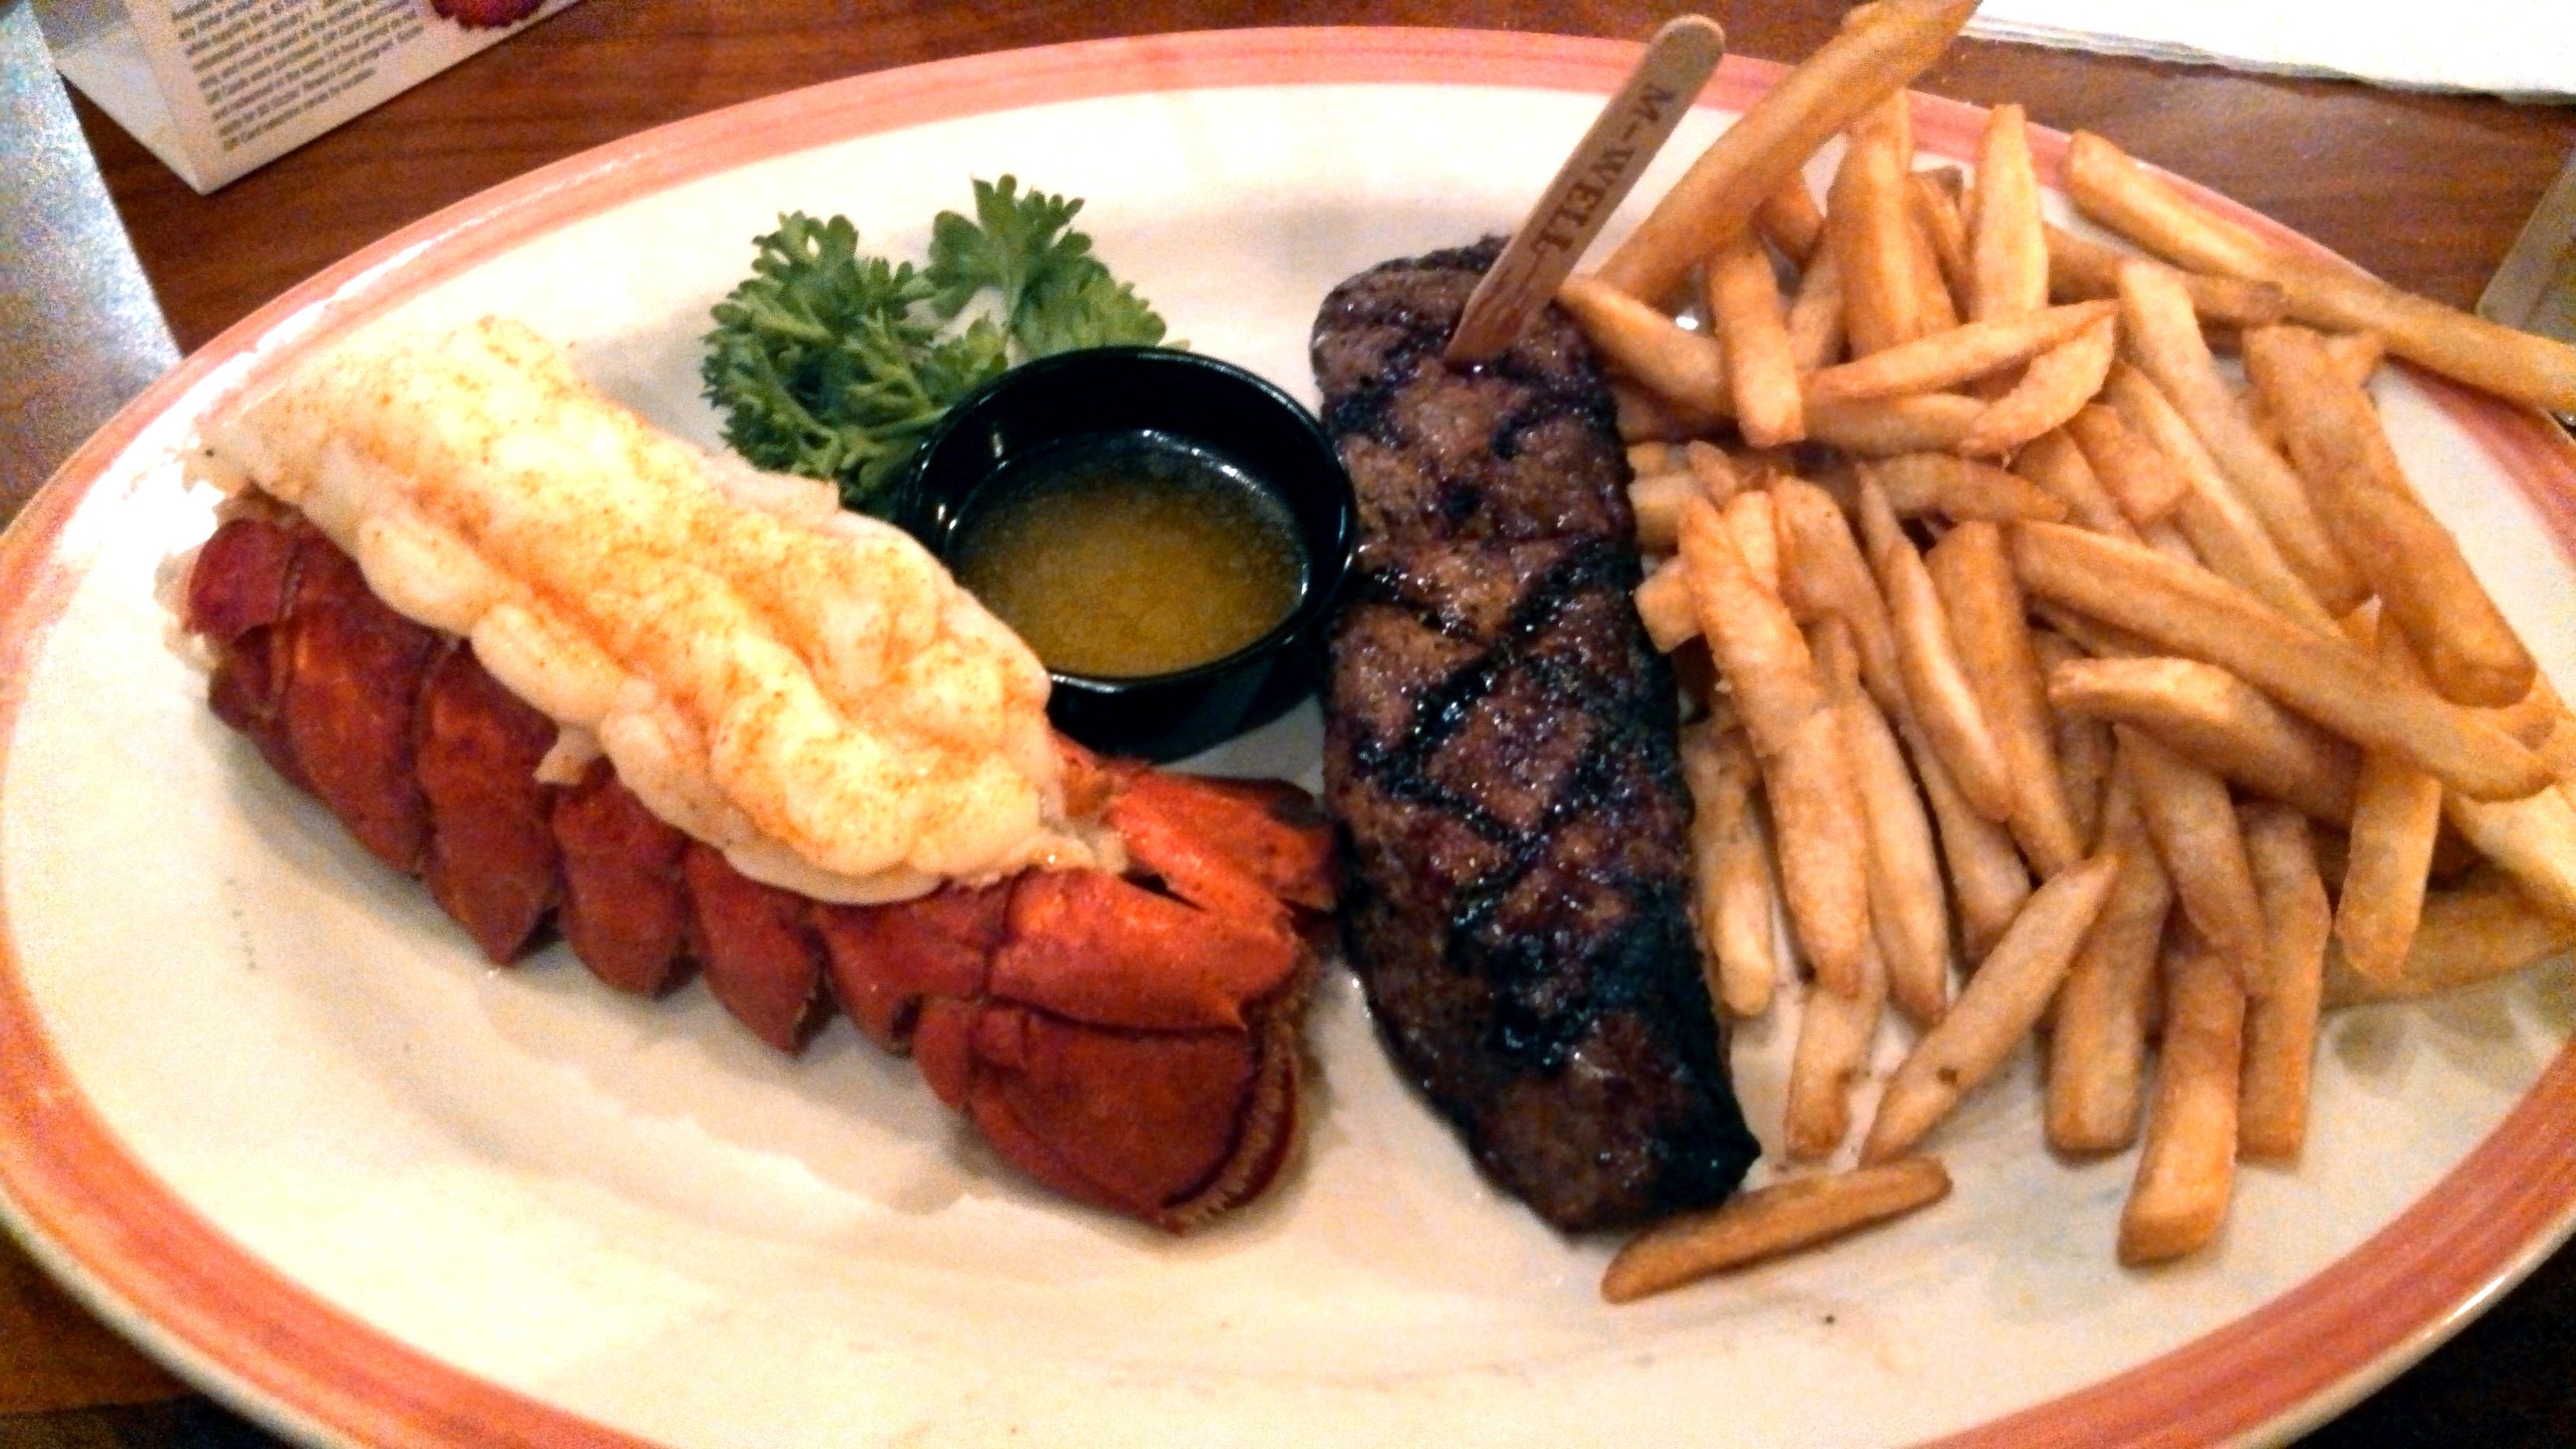 Steak And Lobster Dinner  File Sizzler steak and lobster Wikimedia mons